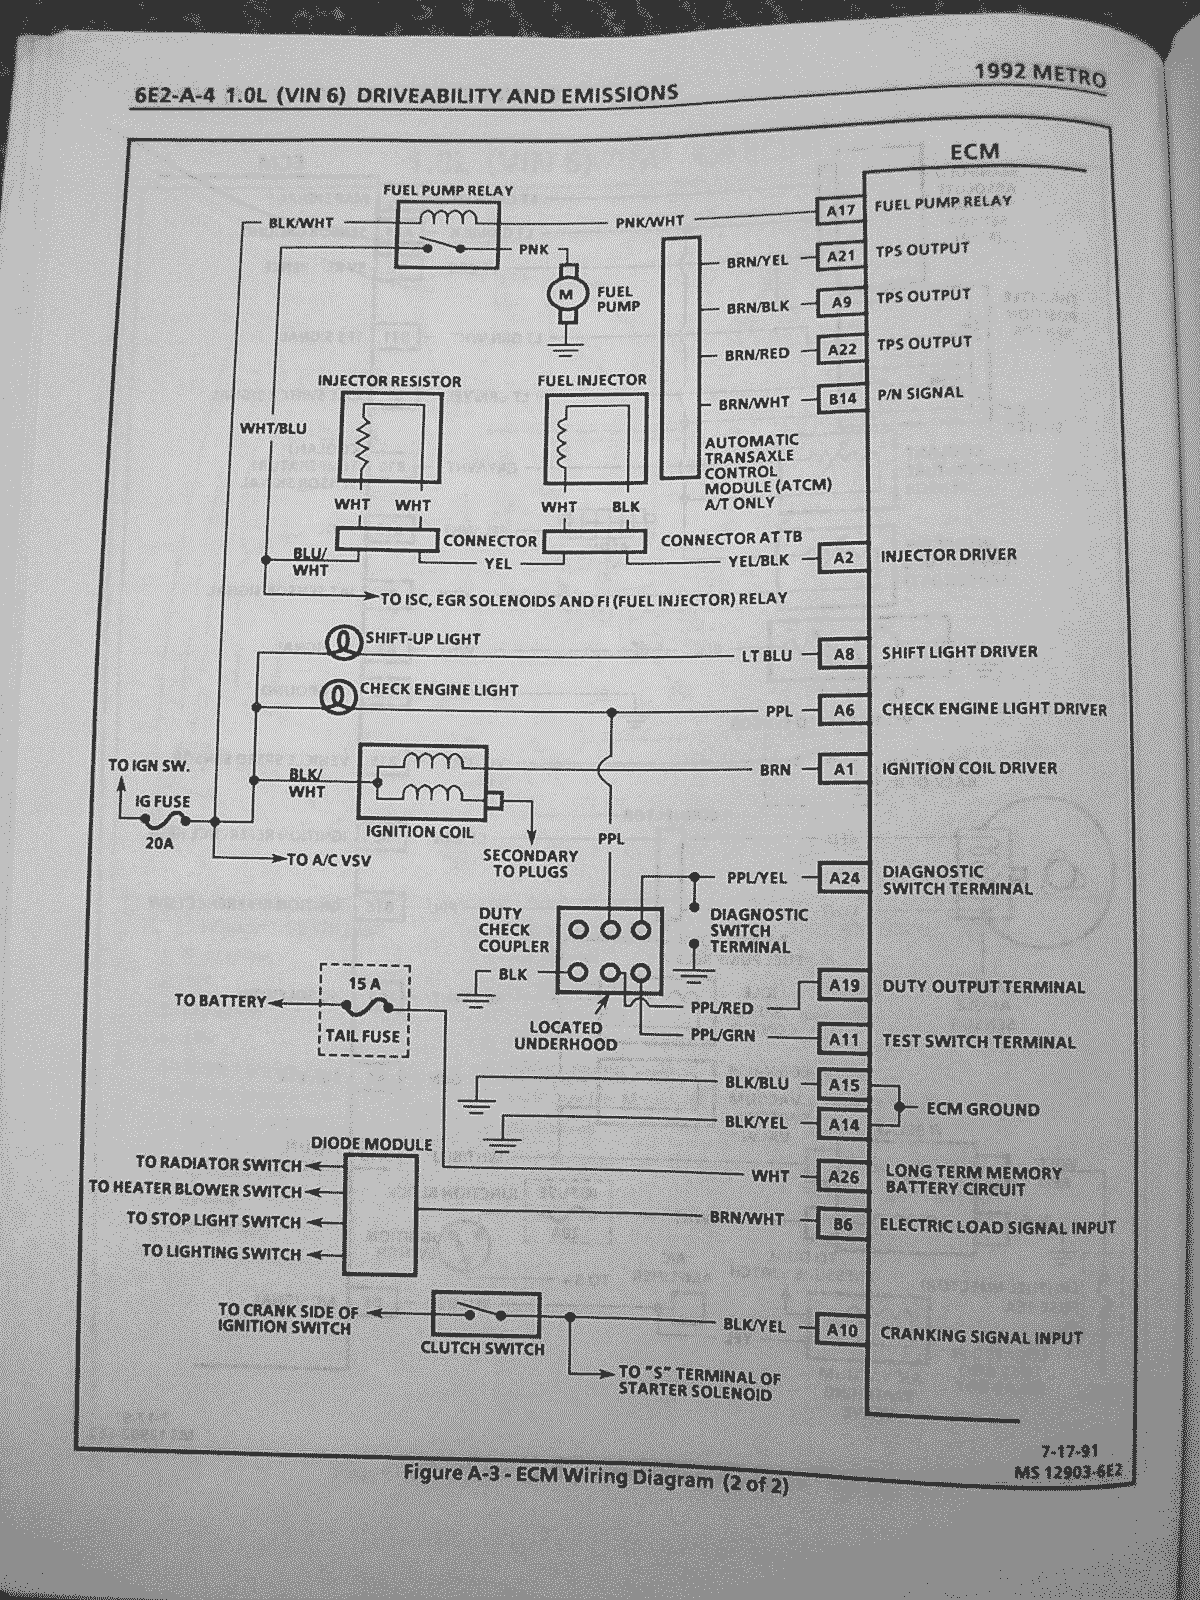 6e2 a 4 geo metro and suzuki swift wiring diagrams metroxfi com geo metro wiring diagram at edmiracle.co